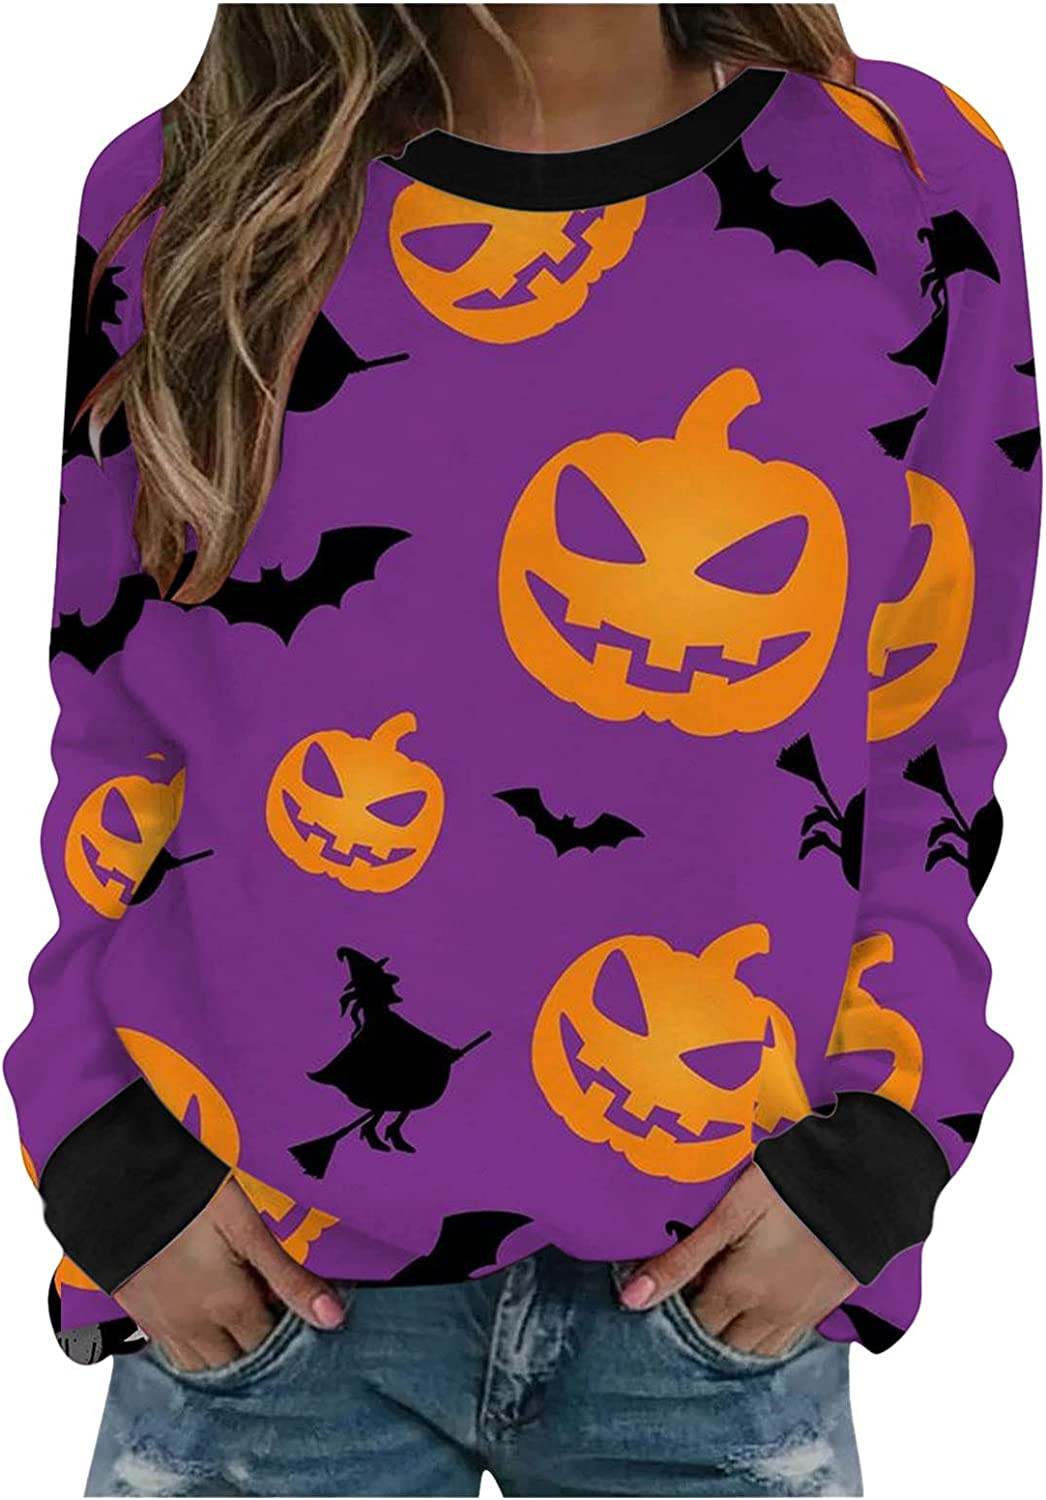 UOCUFY Halloween Sweatshirts for Women, Womens Casual O-Neck Long Sleeve Pumpkin Printed Cute Novelty Pullover Tops